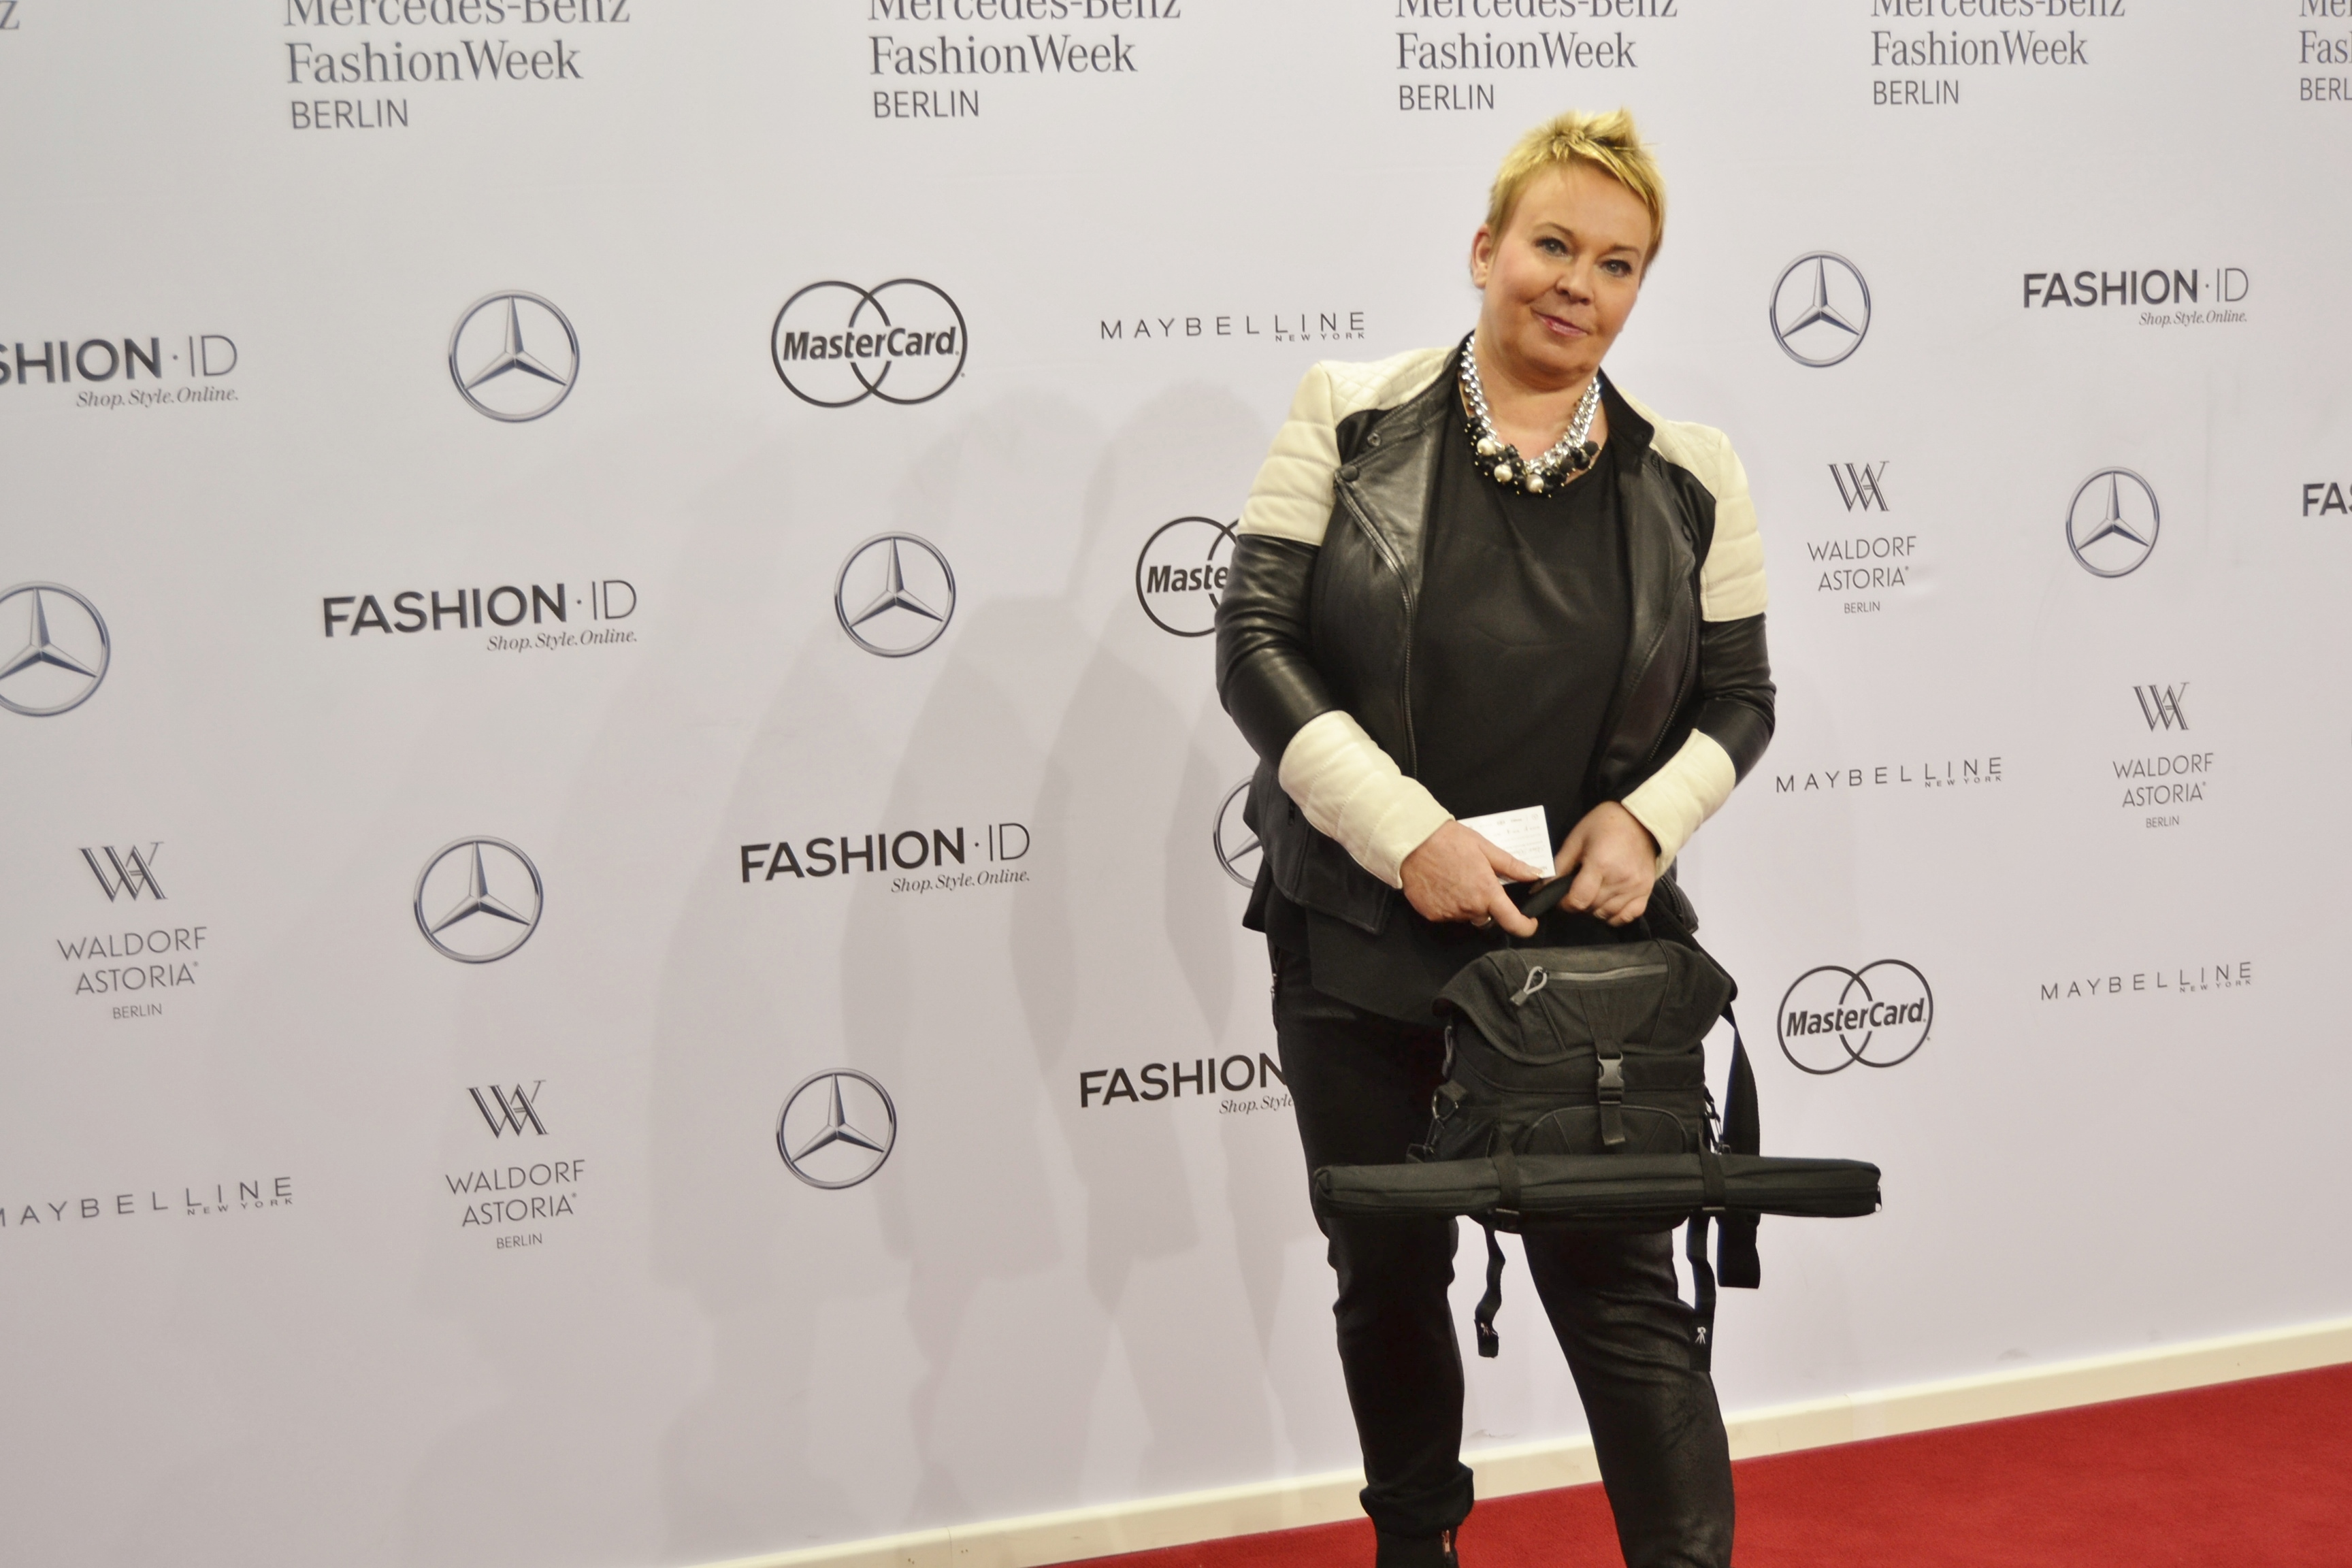 Berlin Fashion Week Mercedes Benz